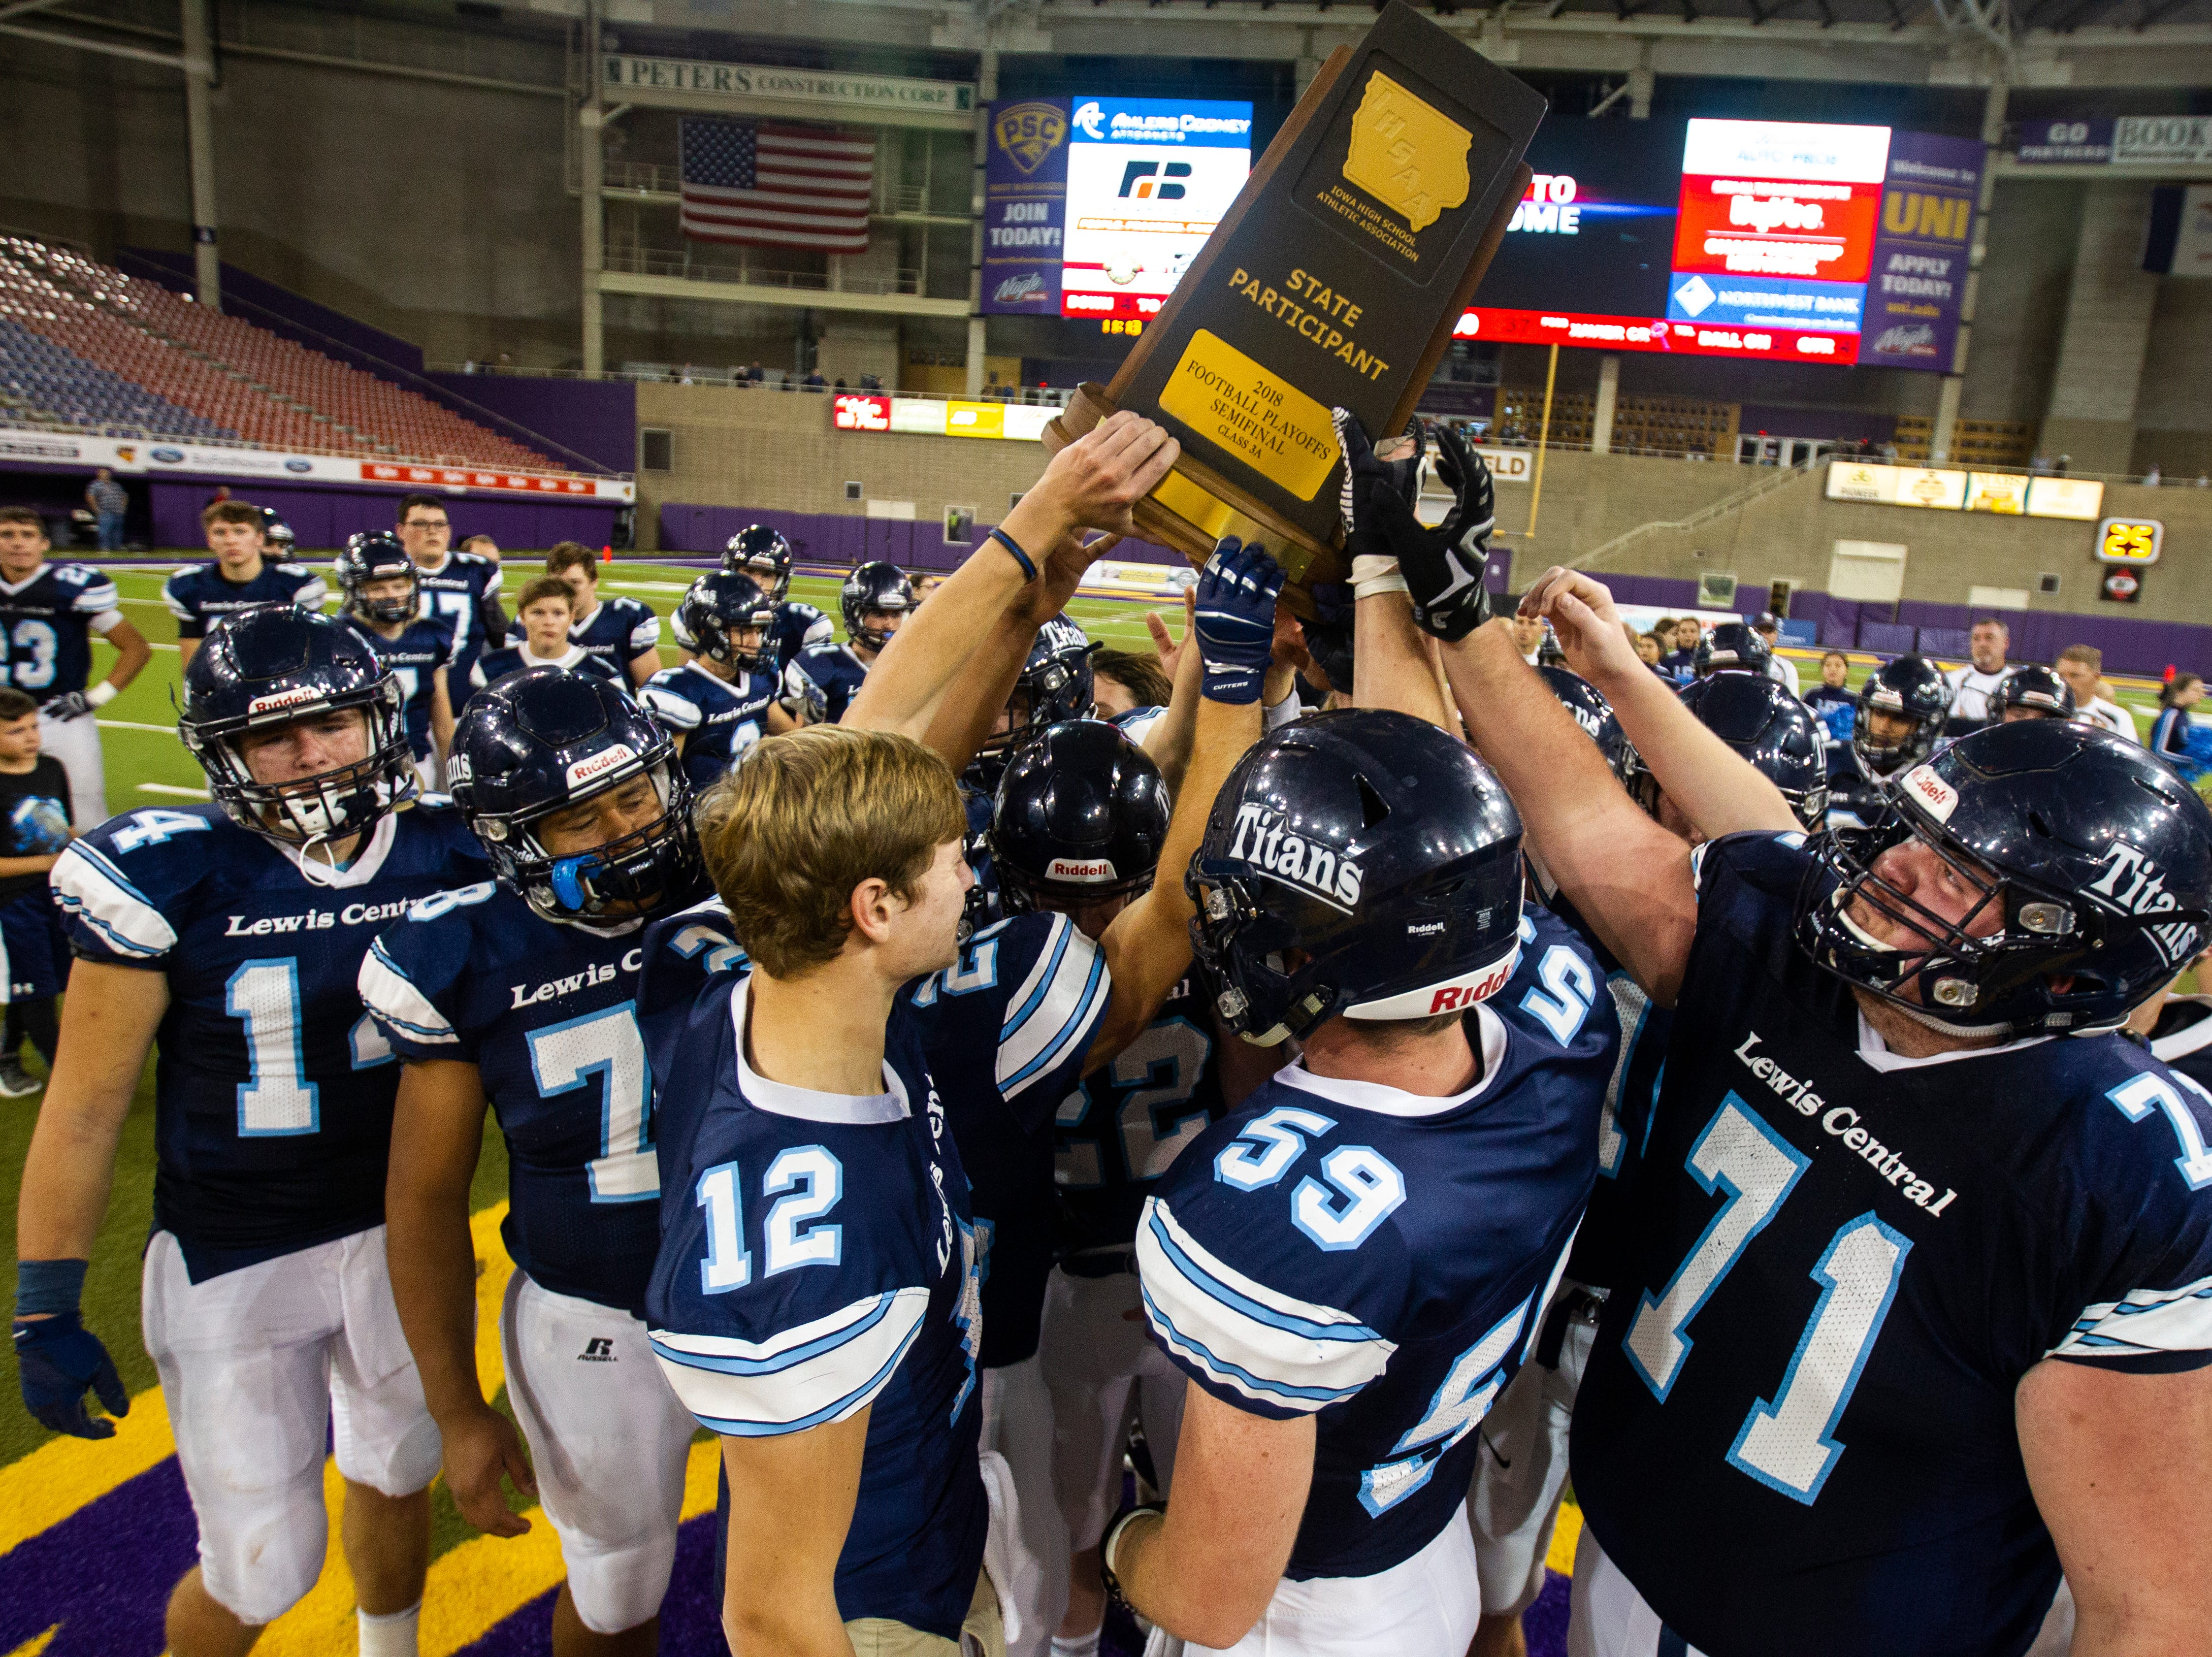 Lewis Central players hold up their state participant trophy after a Class 3A semi finals on Thursday, Nov. 8, 2018, at the UNI-Dome in Cedar Falls.